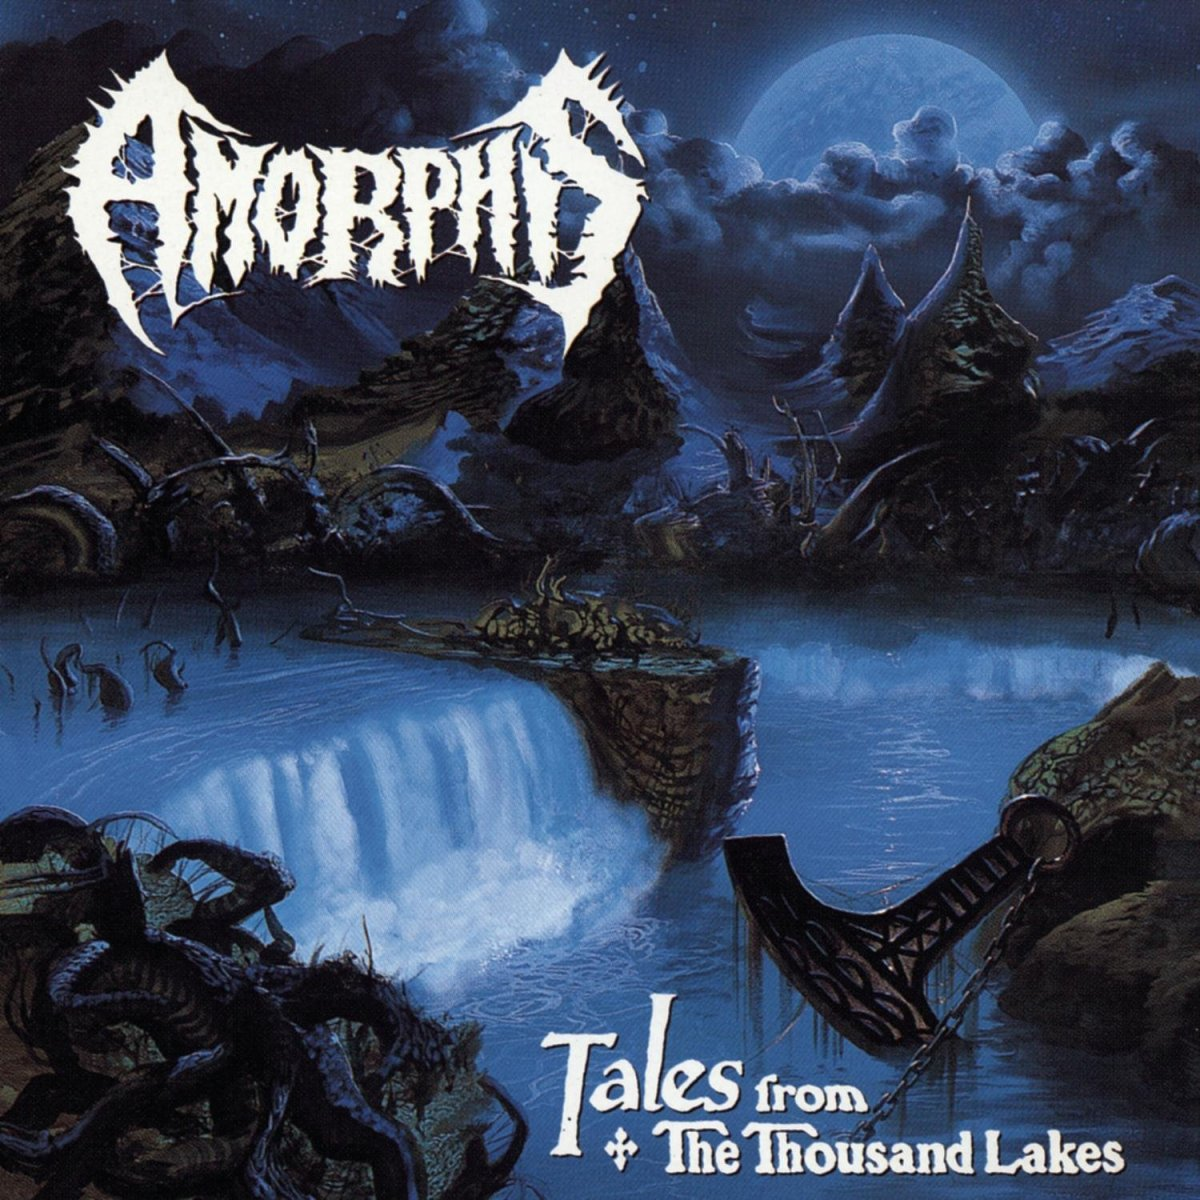 A Review of the album Tales From the Thousand Lakes by Finnish heavy metal band Amorphis